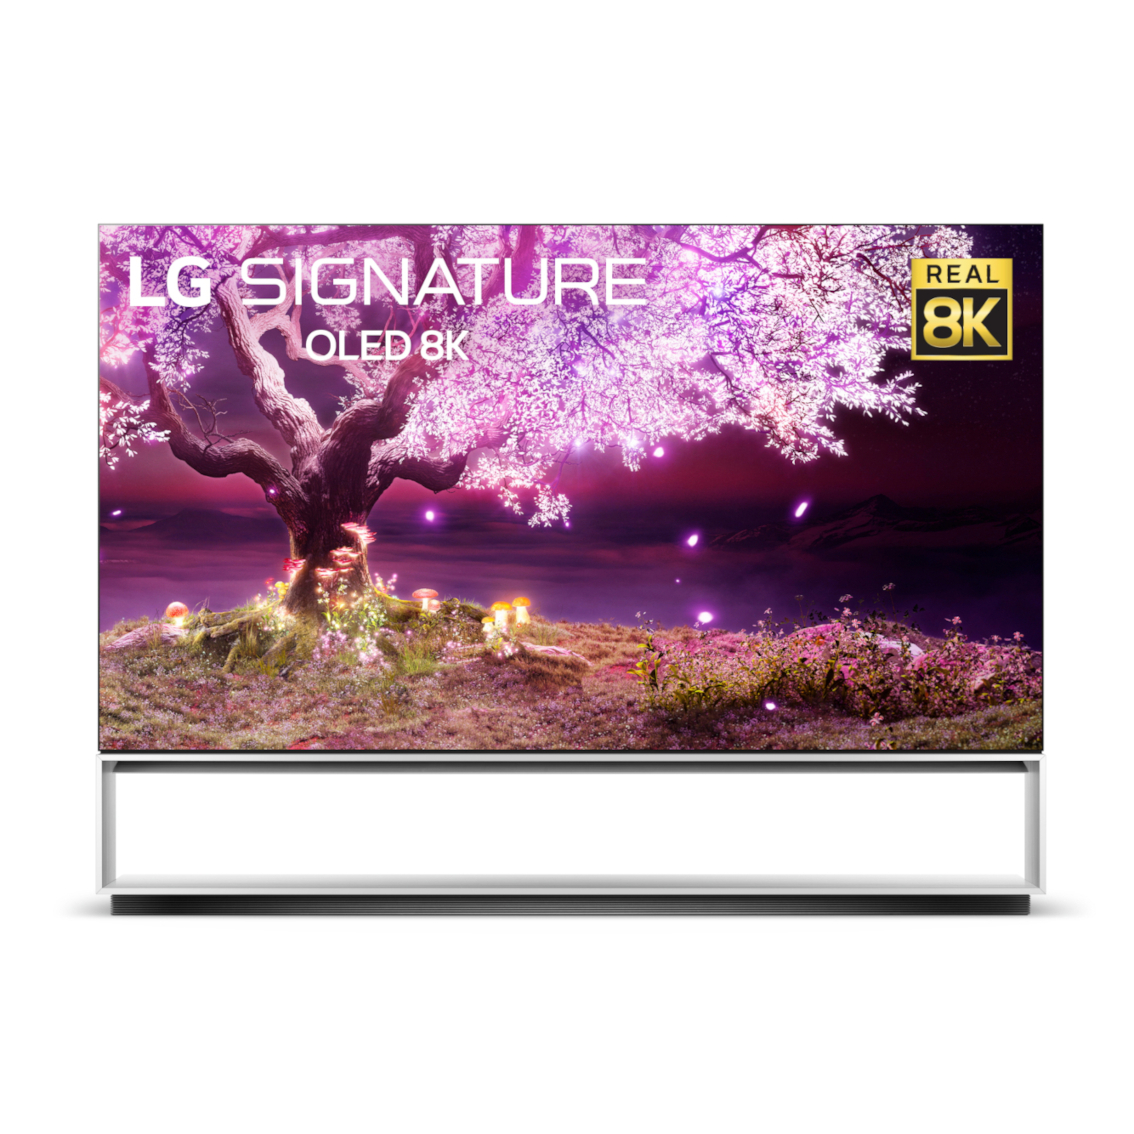 Front view of LG 8K OLED Z1 displaying a tree from fantasy with leaves illuminating bright purple in the night sky to showcase the display's amazing clarity, detail and realism